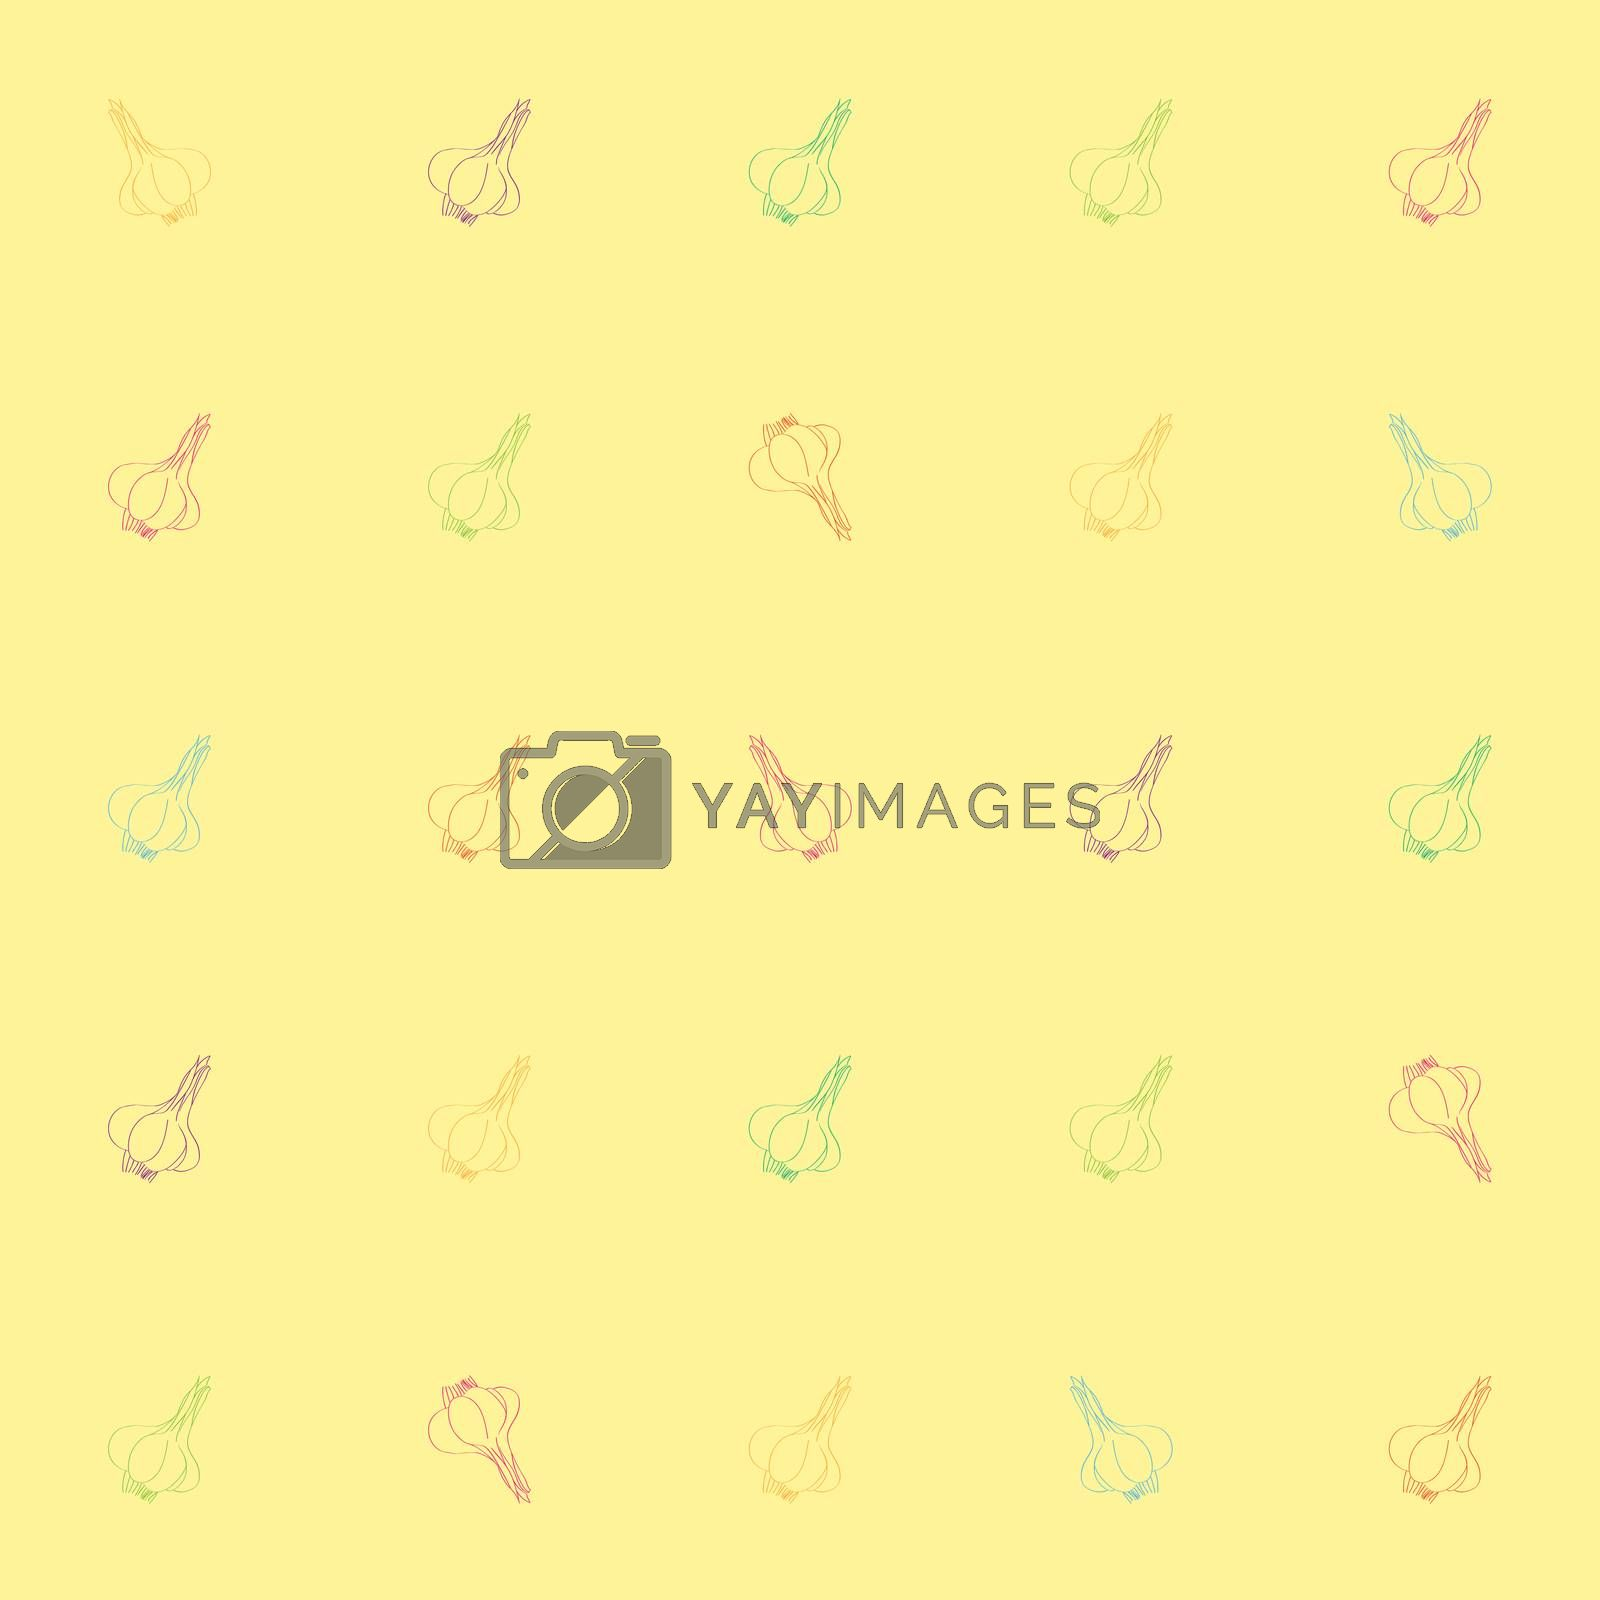 Seamless pattern with garlic, doodle illustration of multicolored cloves over a yellow background